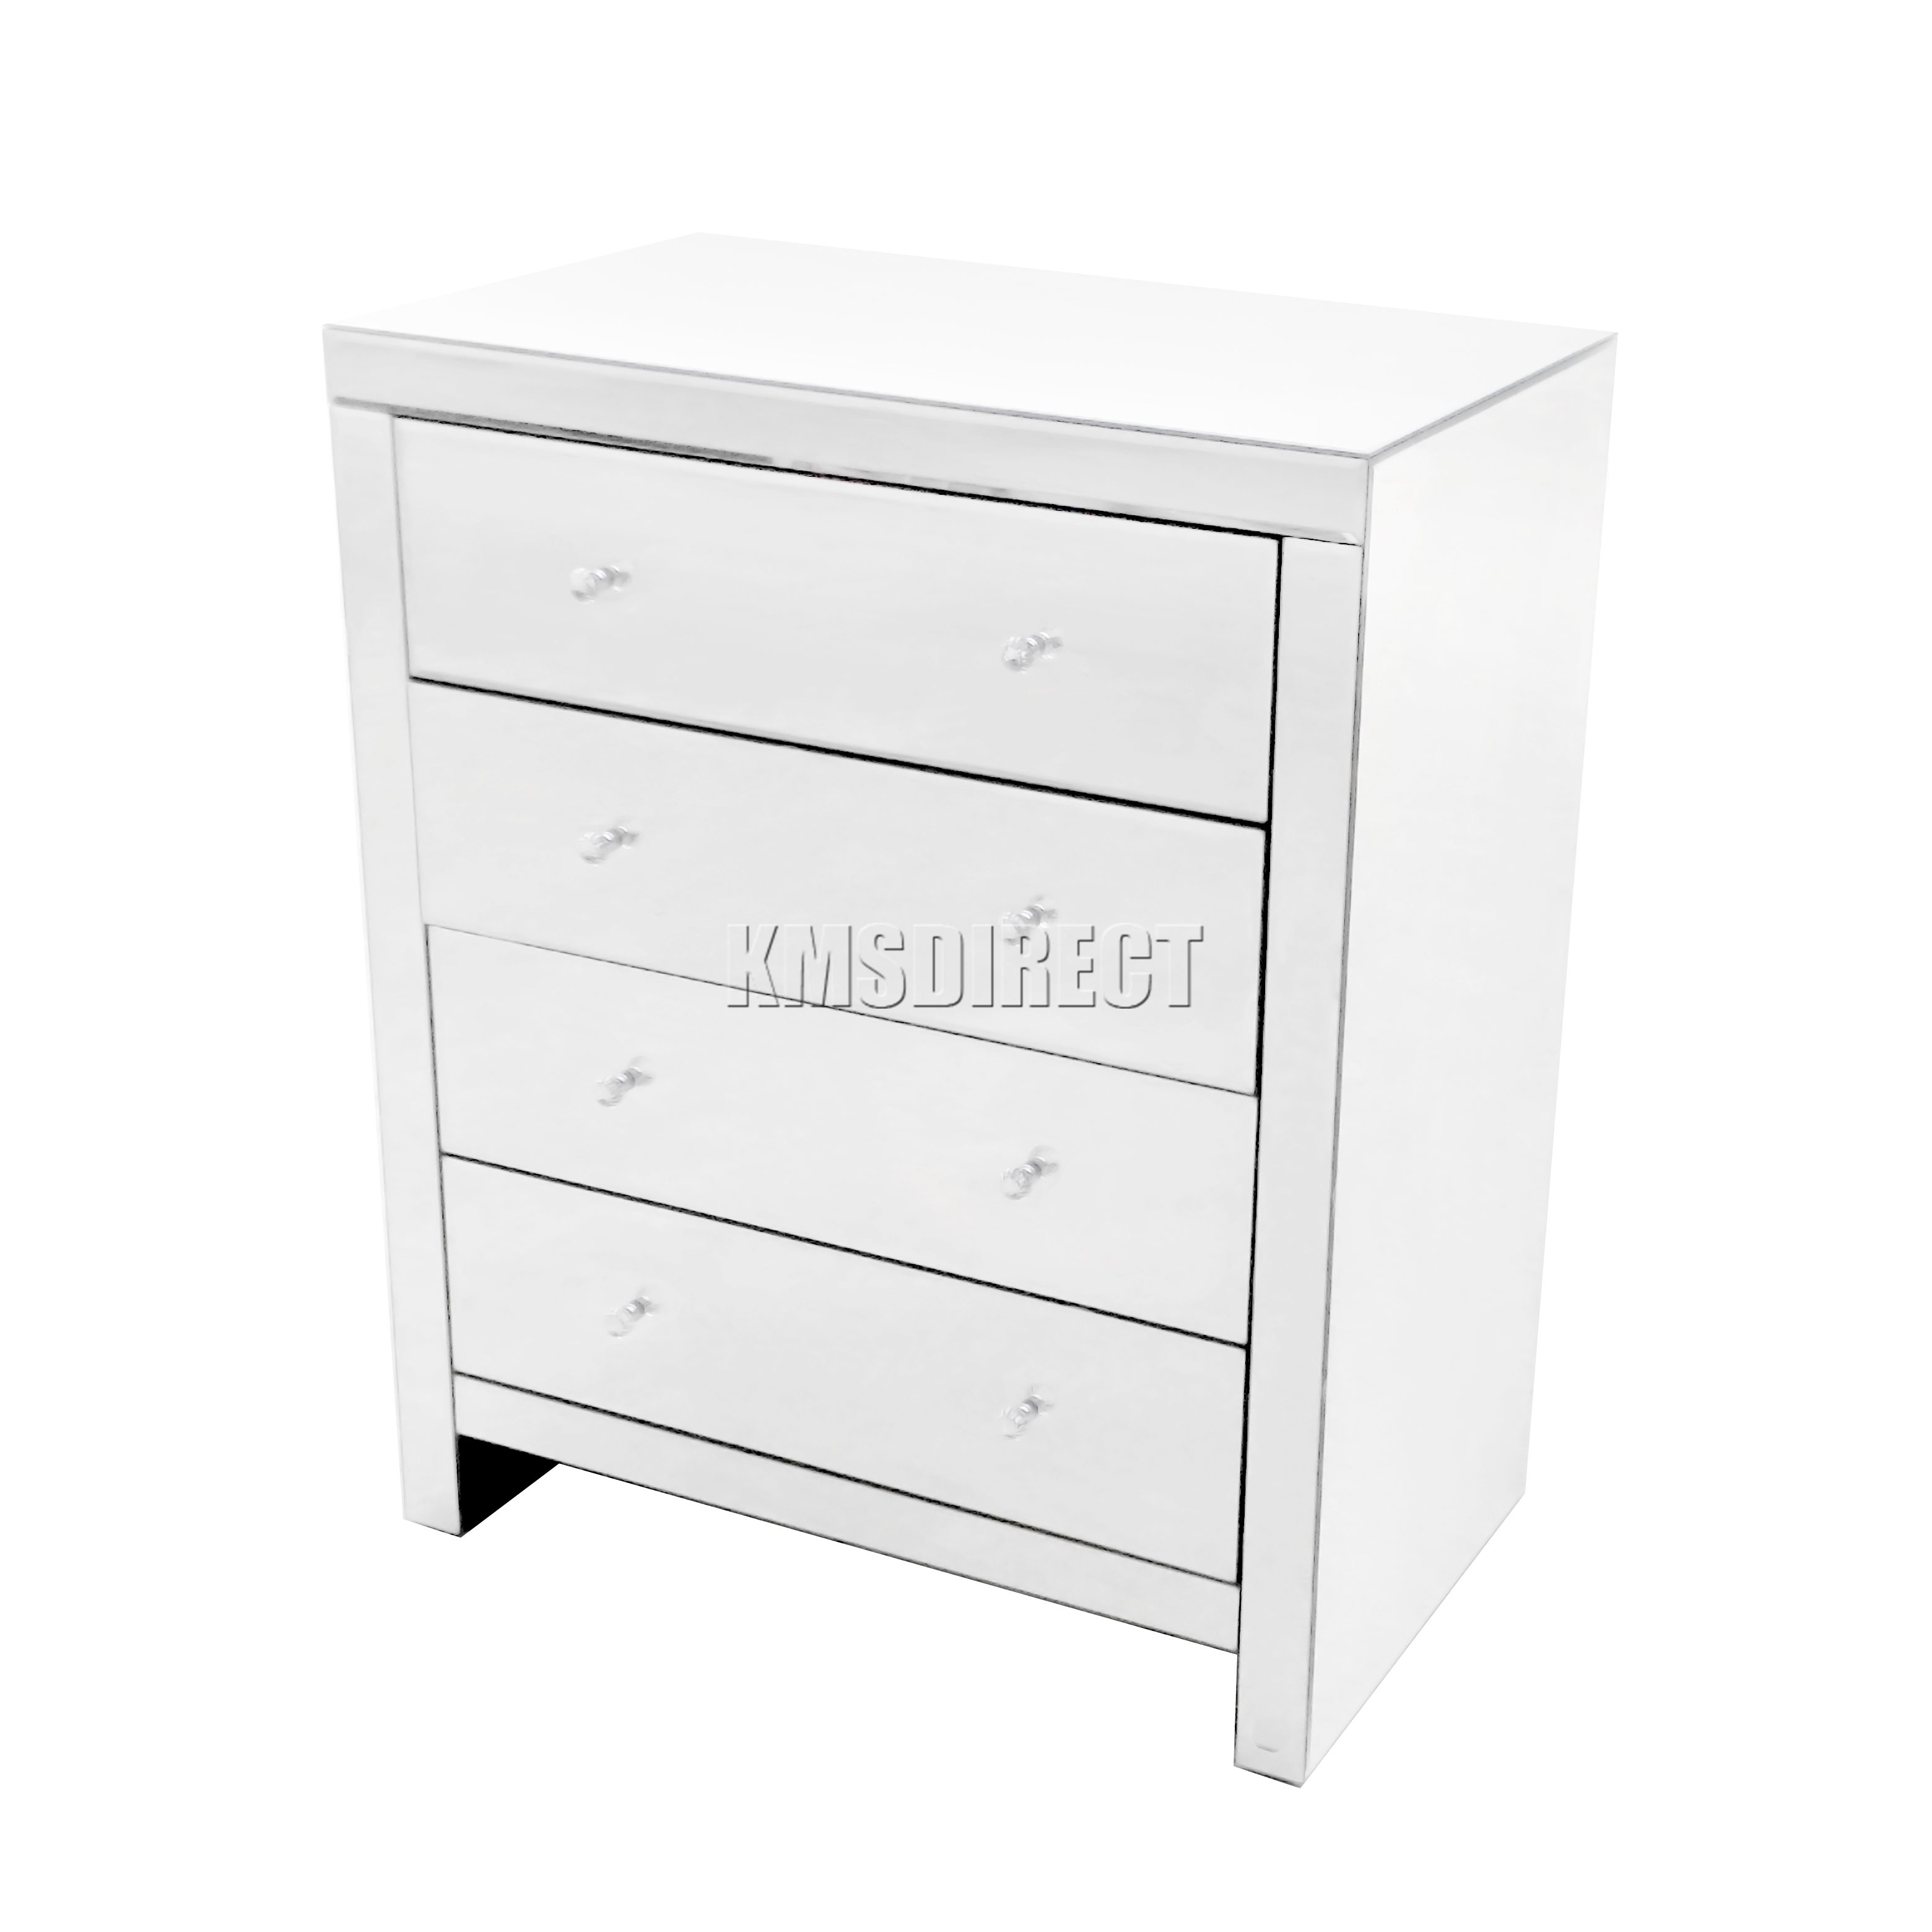 Glass Mirrored Chest Of Drawers Mirrored Console With Drawers Images Foxhunter Mirrored